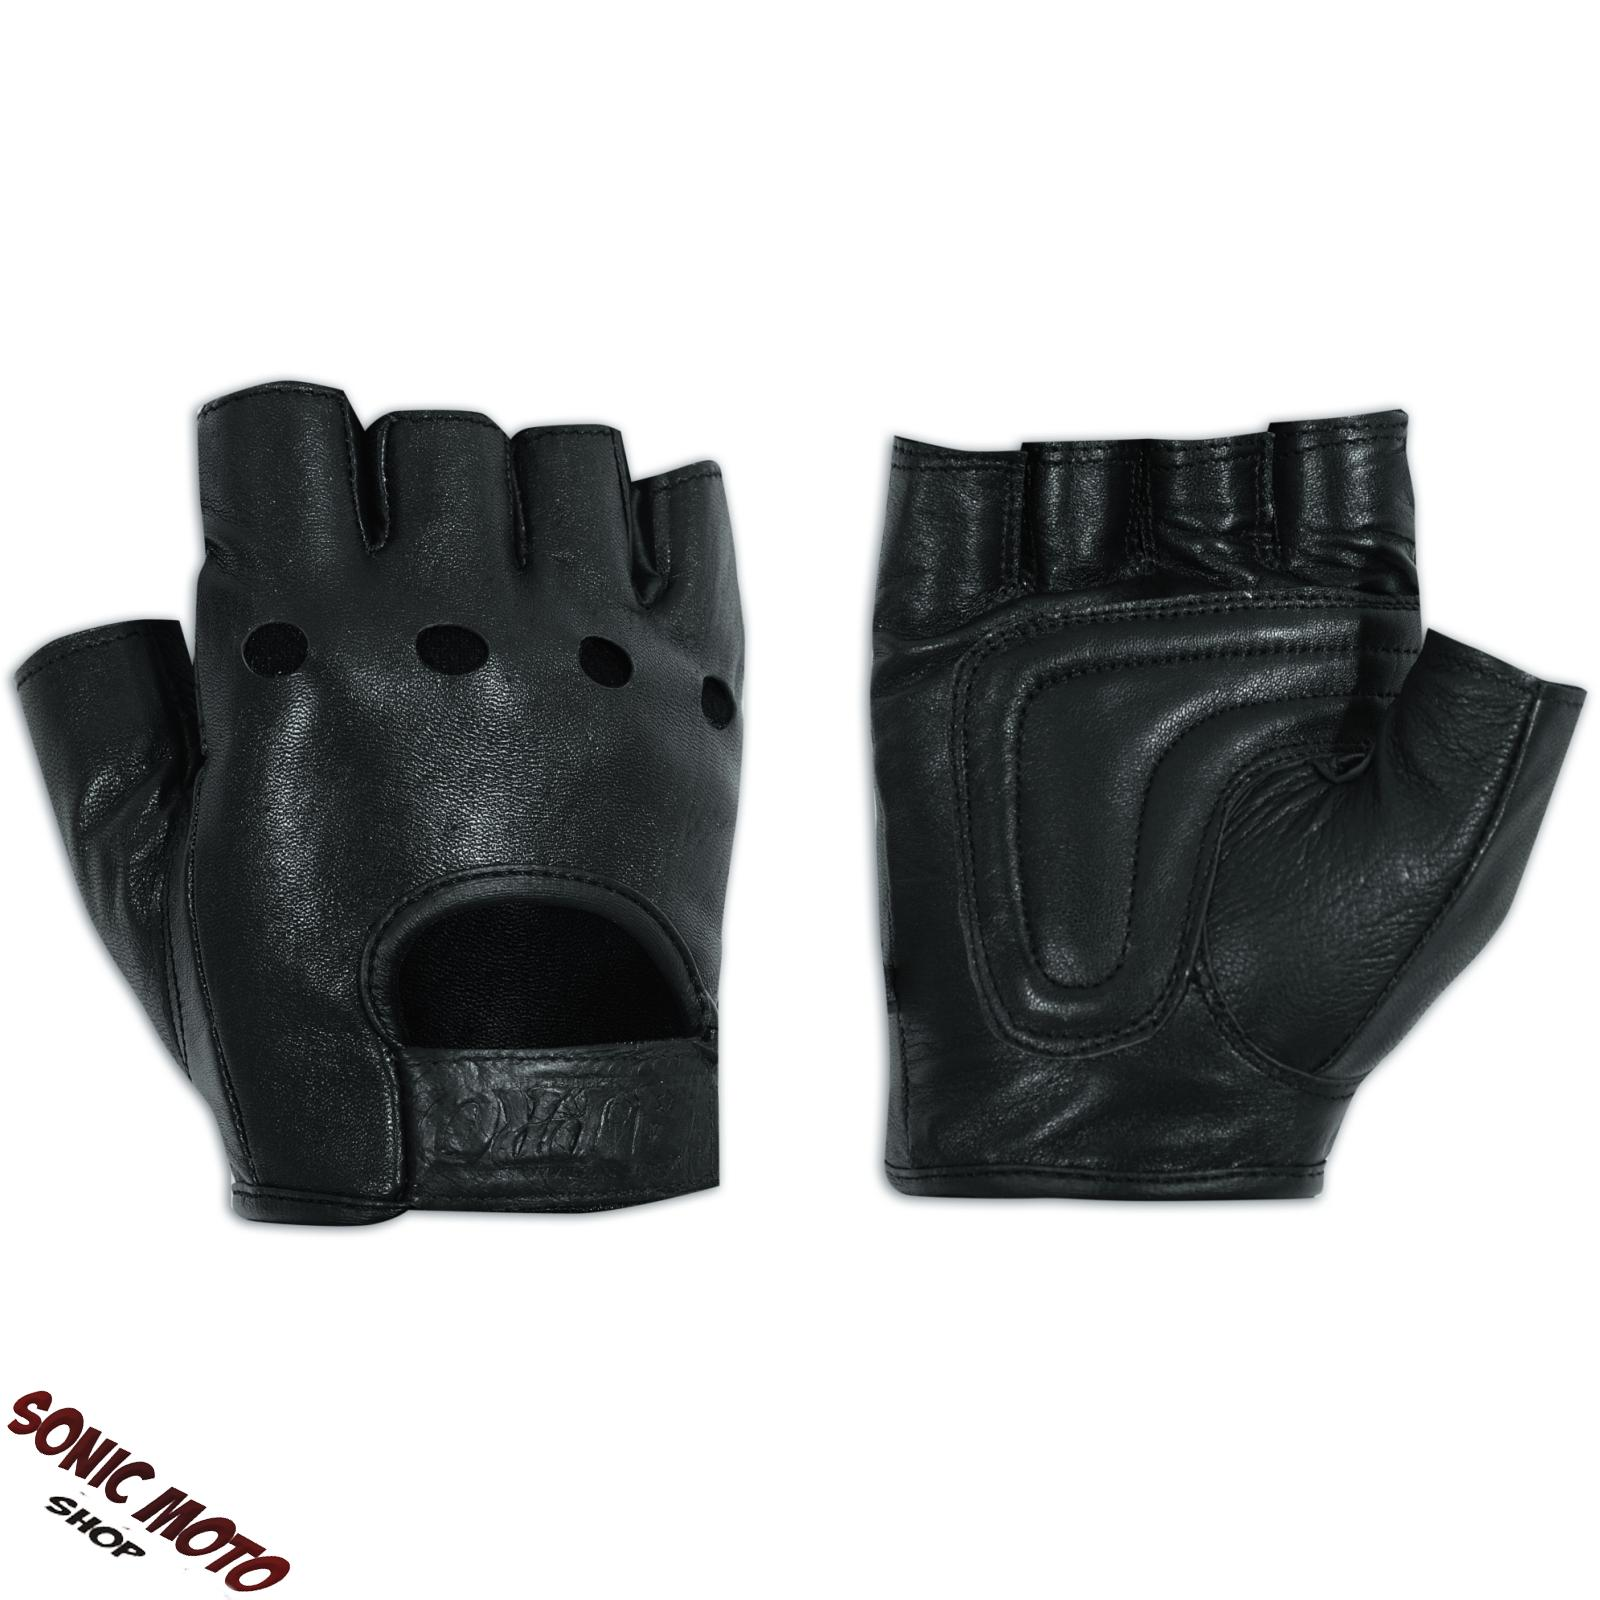 Fingerless Biker Gloves Soft leather Cowhide Apparel Punk ...